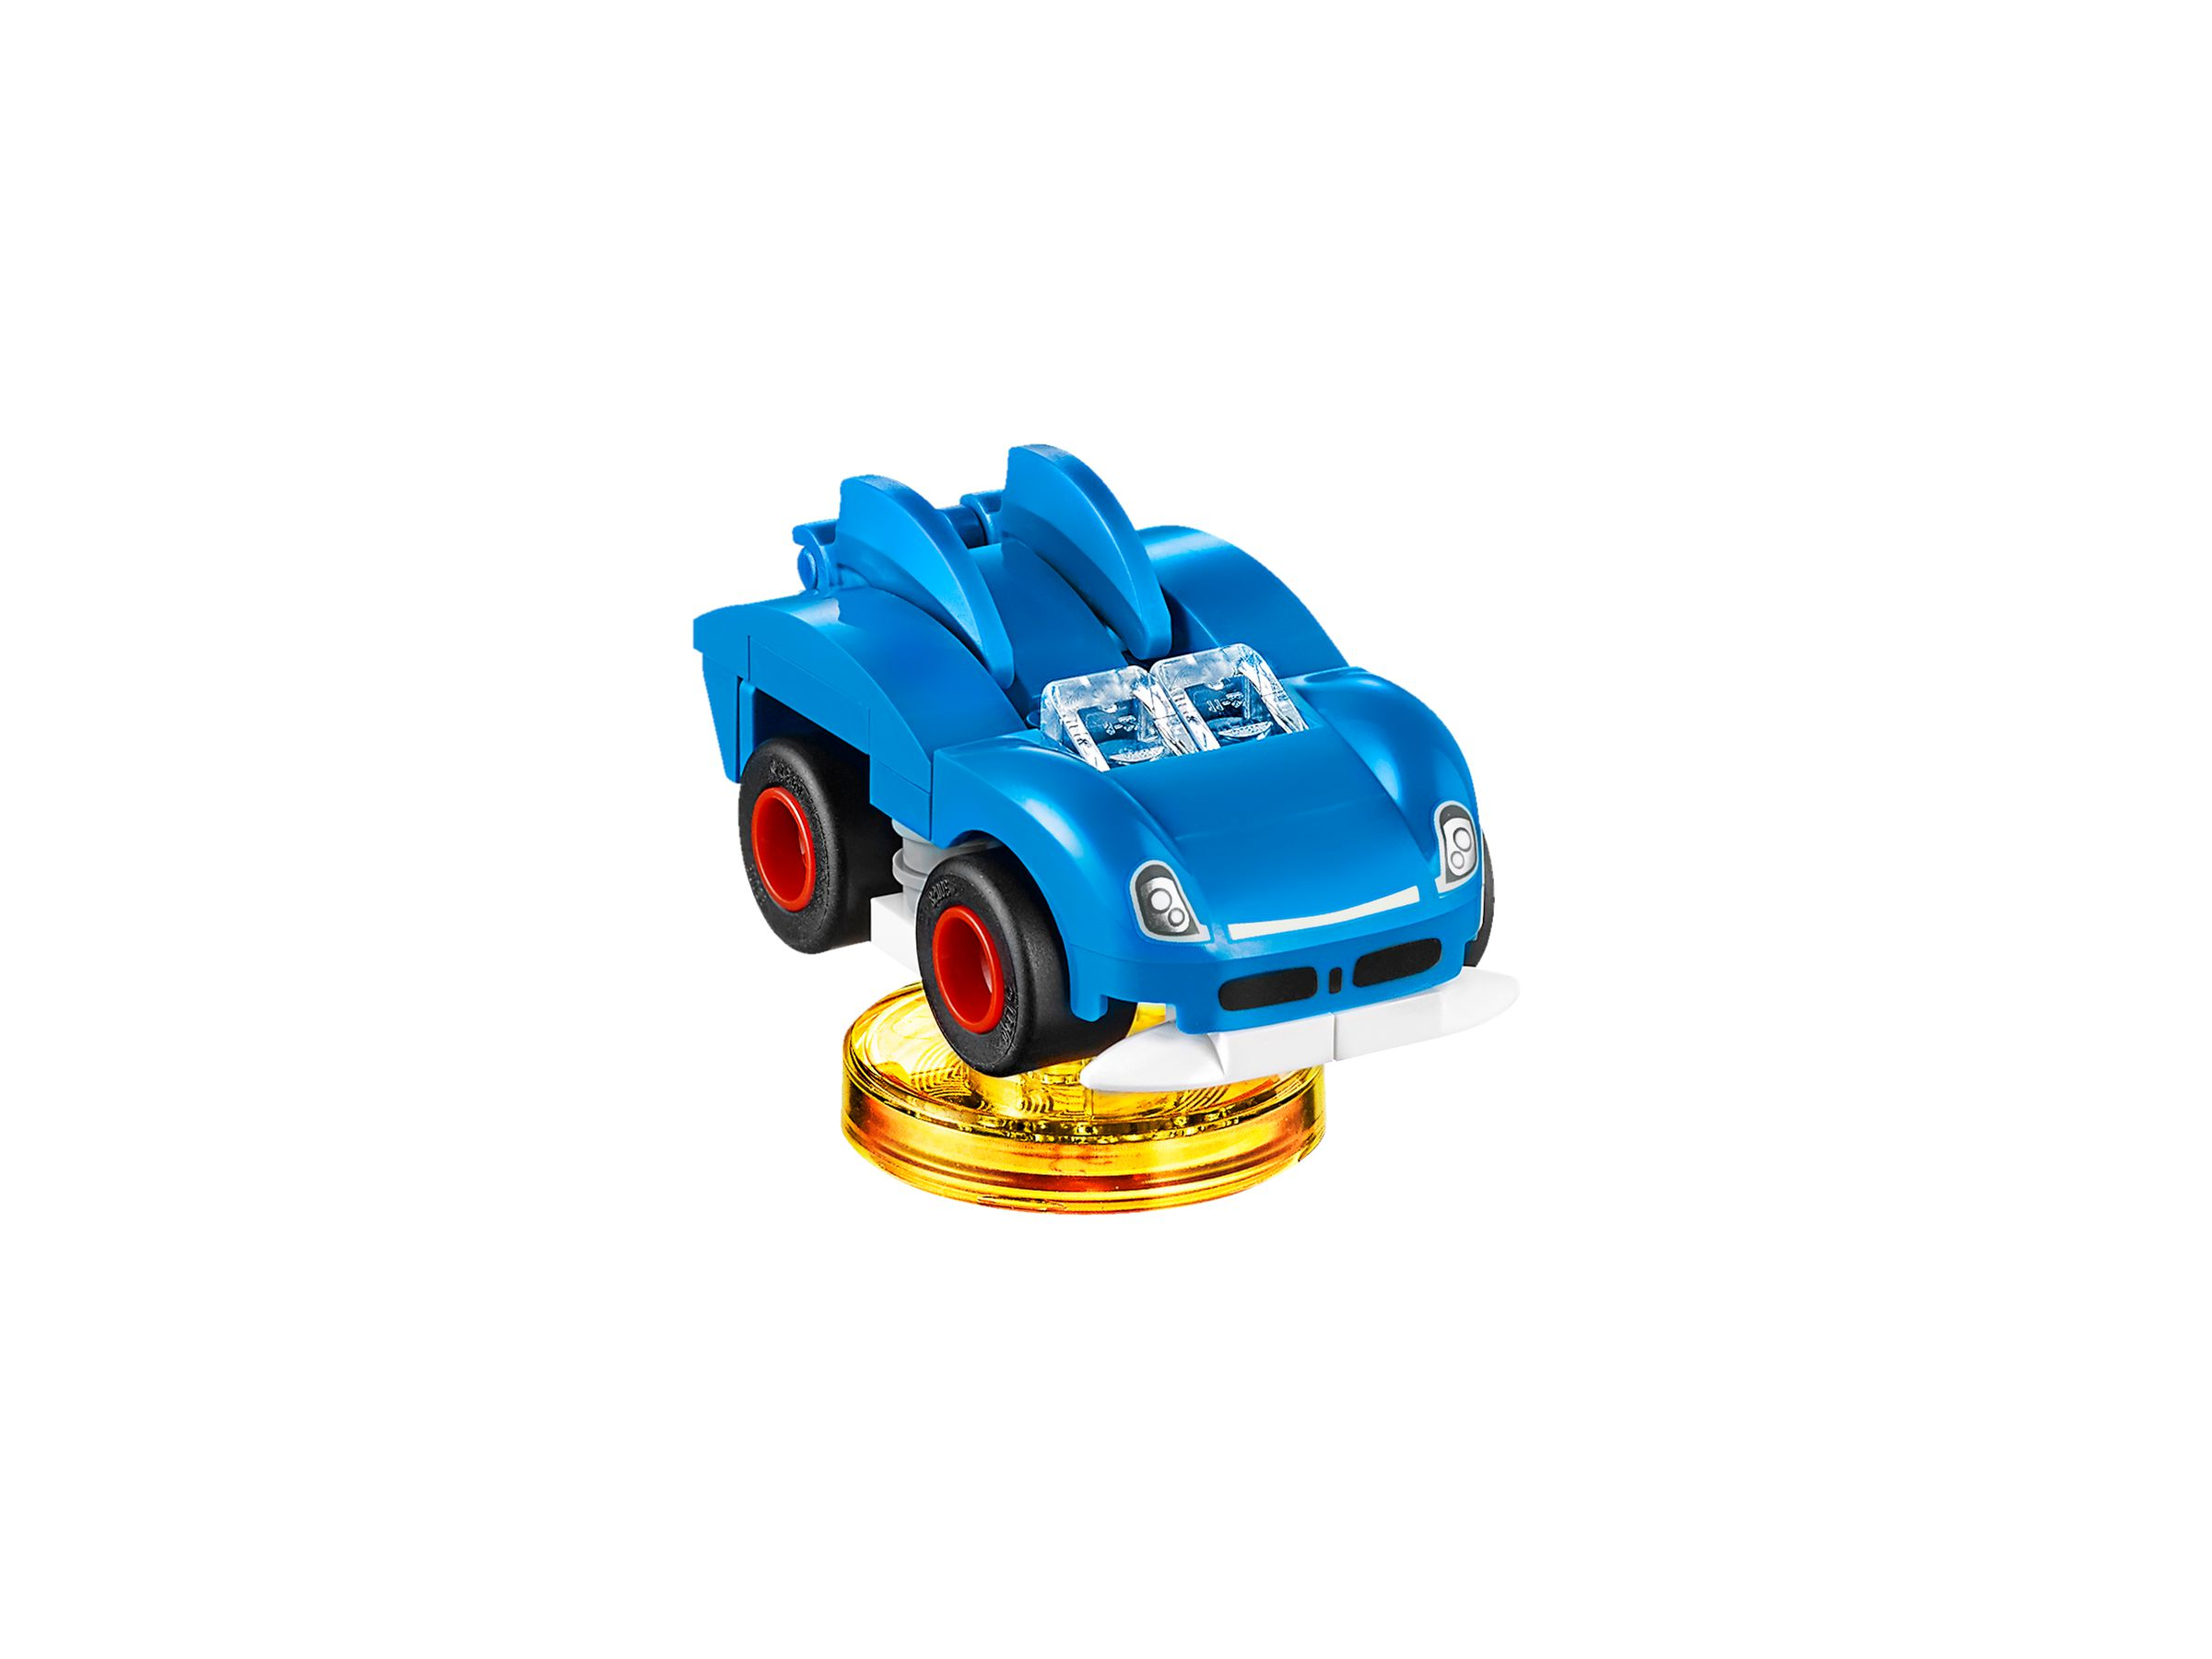 LEGO Dimensions 71244 Level Pack Sonic the Hedgehog LEGO_71244_alt3.jpg